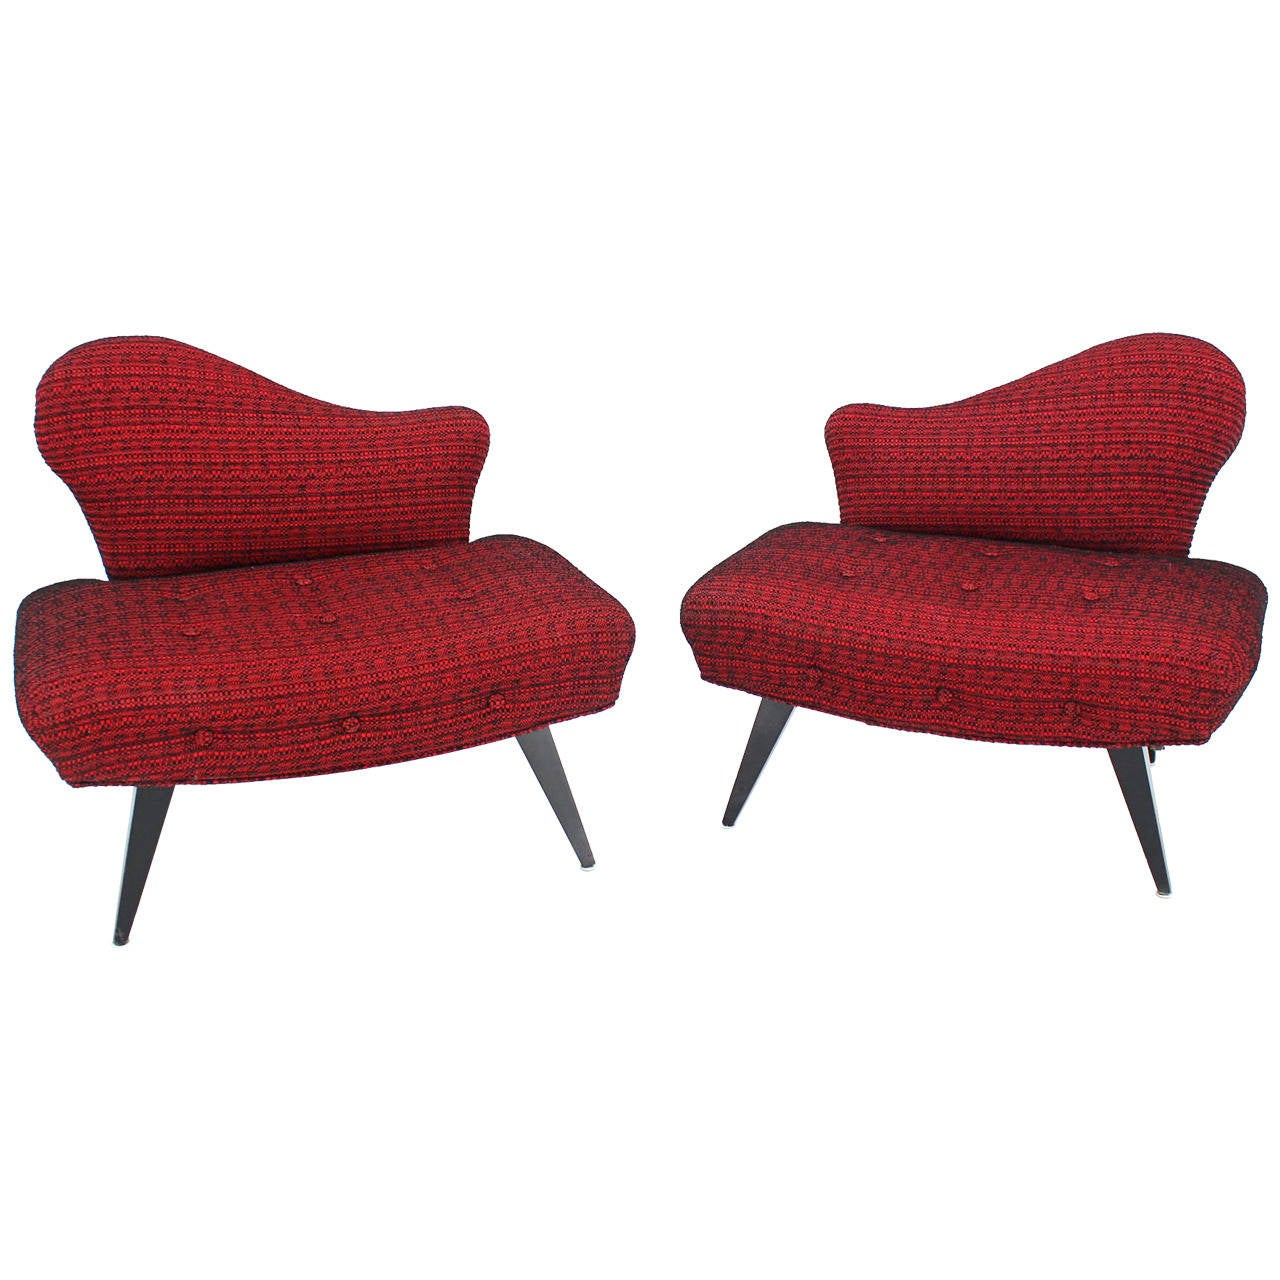 Pair of Fireside Slipper Lounge Chairs